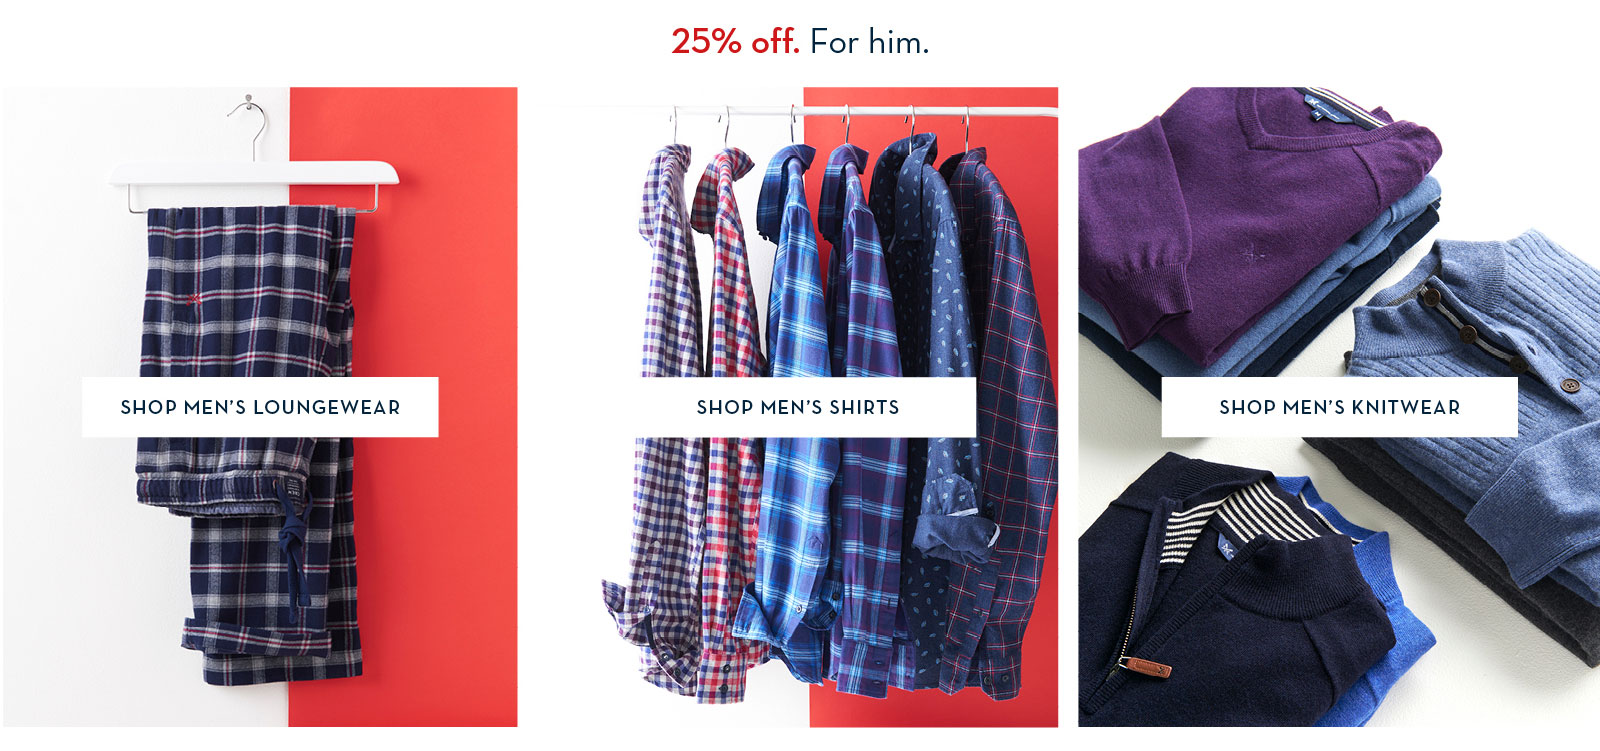 25% off. For him.